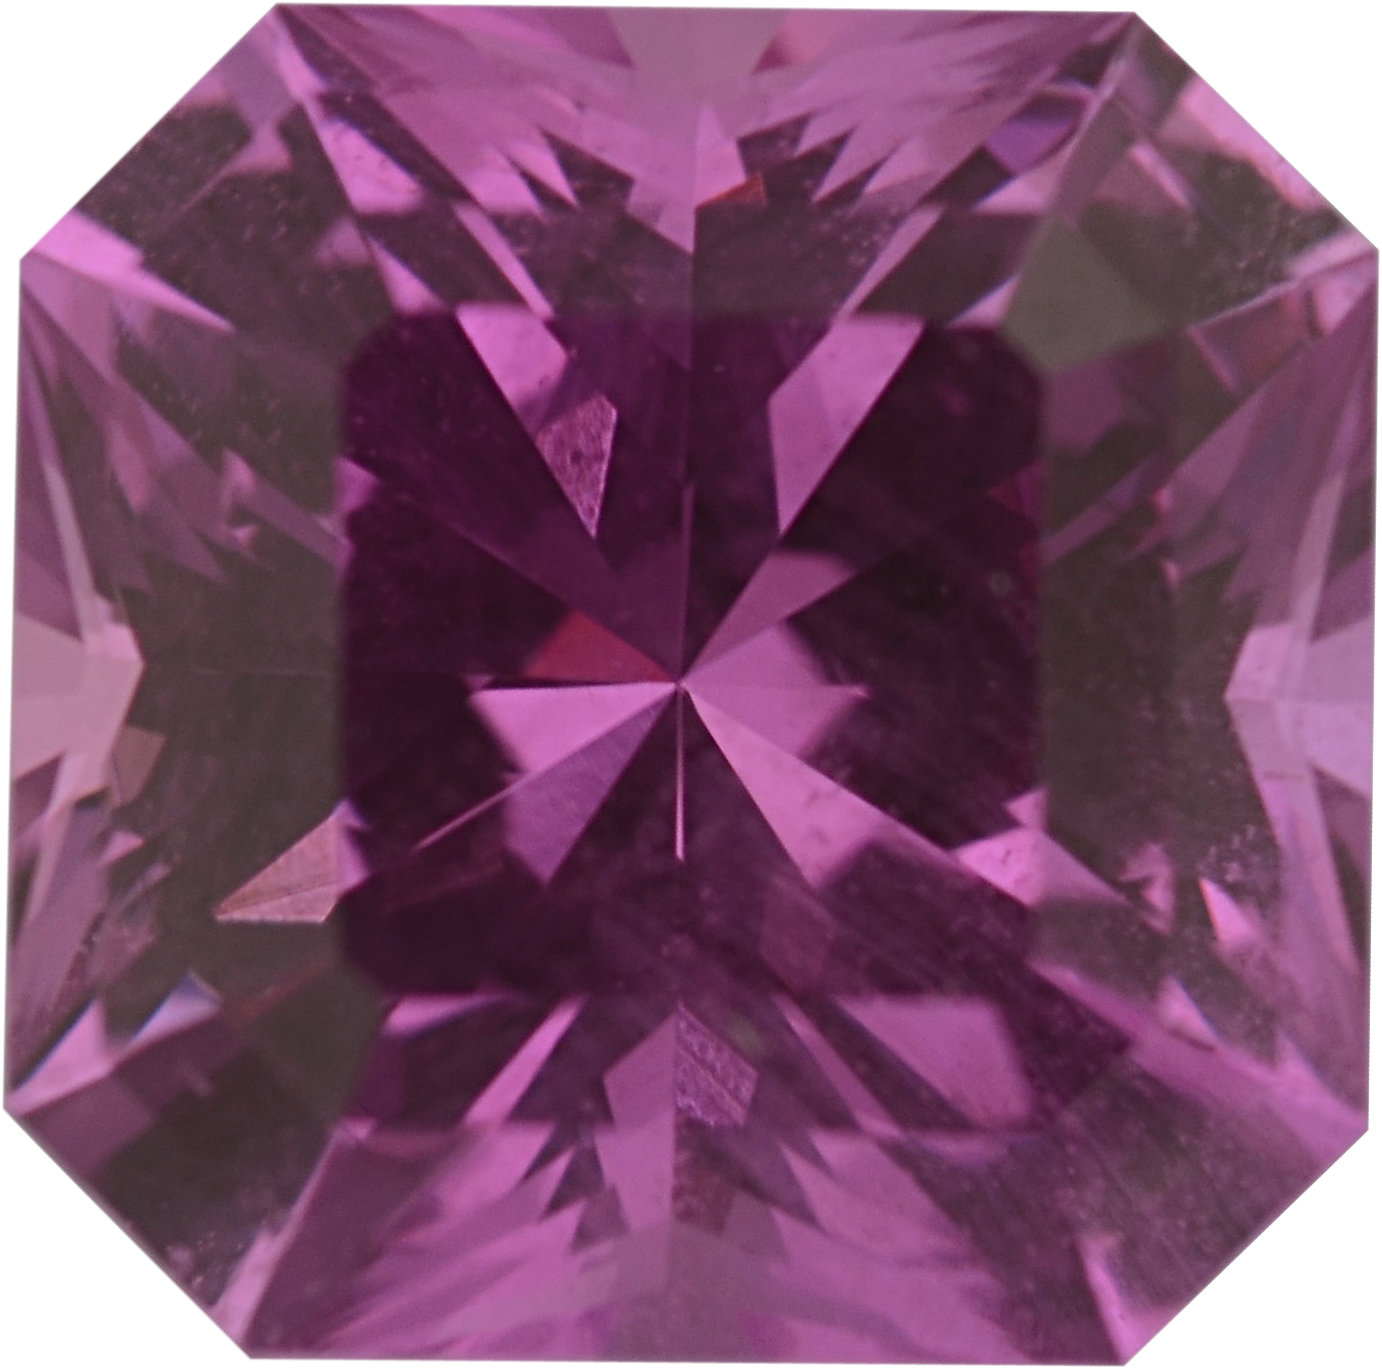 Hard to Find  Unheated Sapphire Loose Gem in Asscher Cut, Vibrant Purple Pink, 6.46 x 6.44  mm, 1.68 Carats